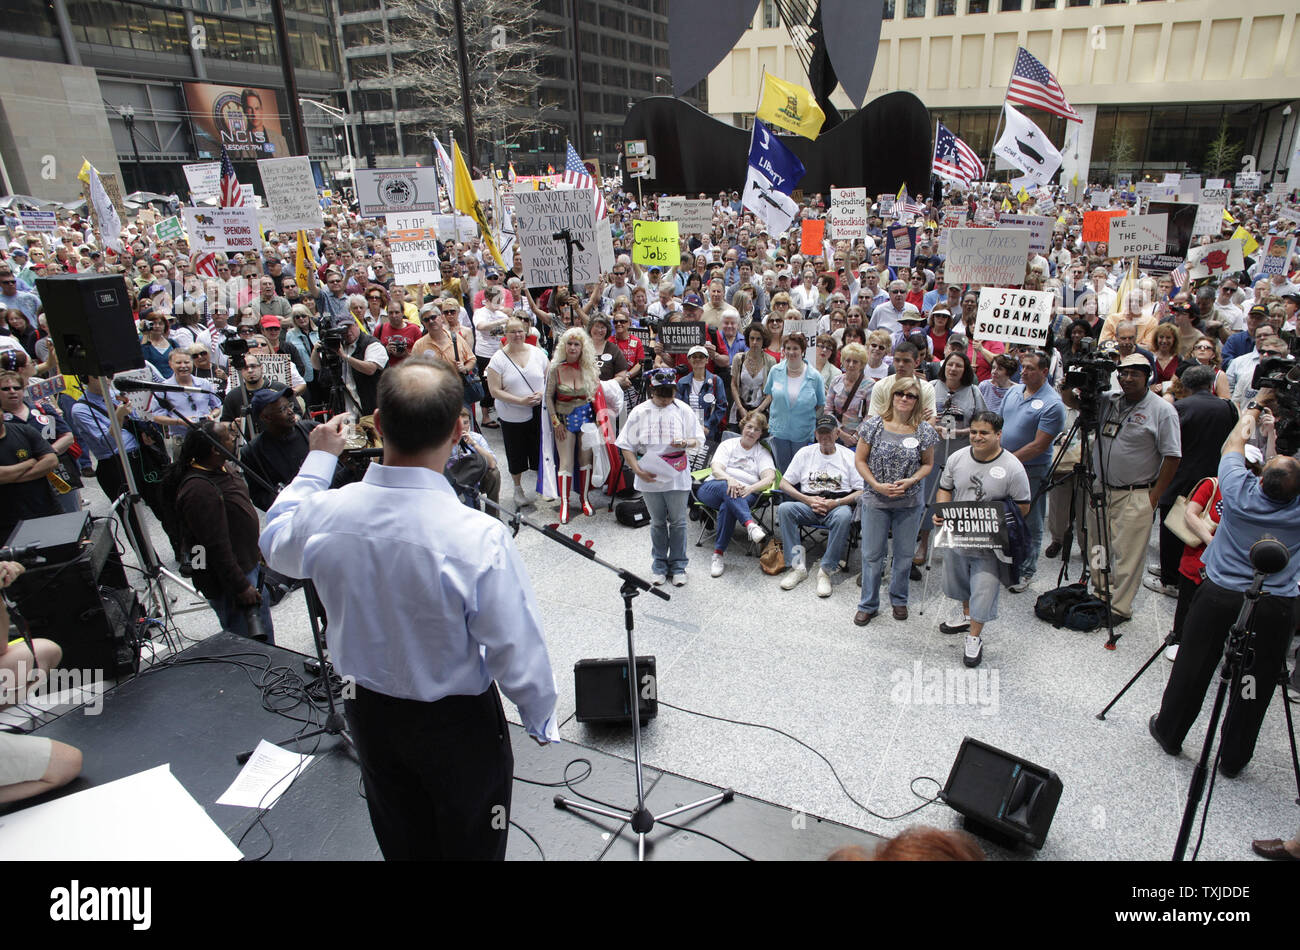 Tea party activists gather for a rally at Daley Plaza in Chicago on April 15, 2010. The rally was one of thousands held by tea party activists around the country on tax day.    UPI/Brian Kersey Stock Photo